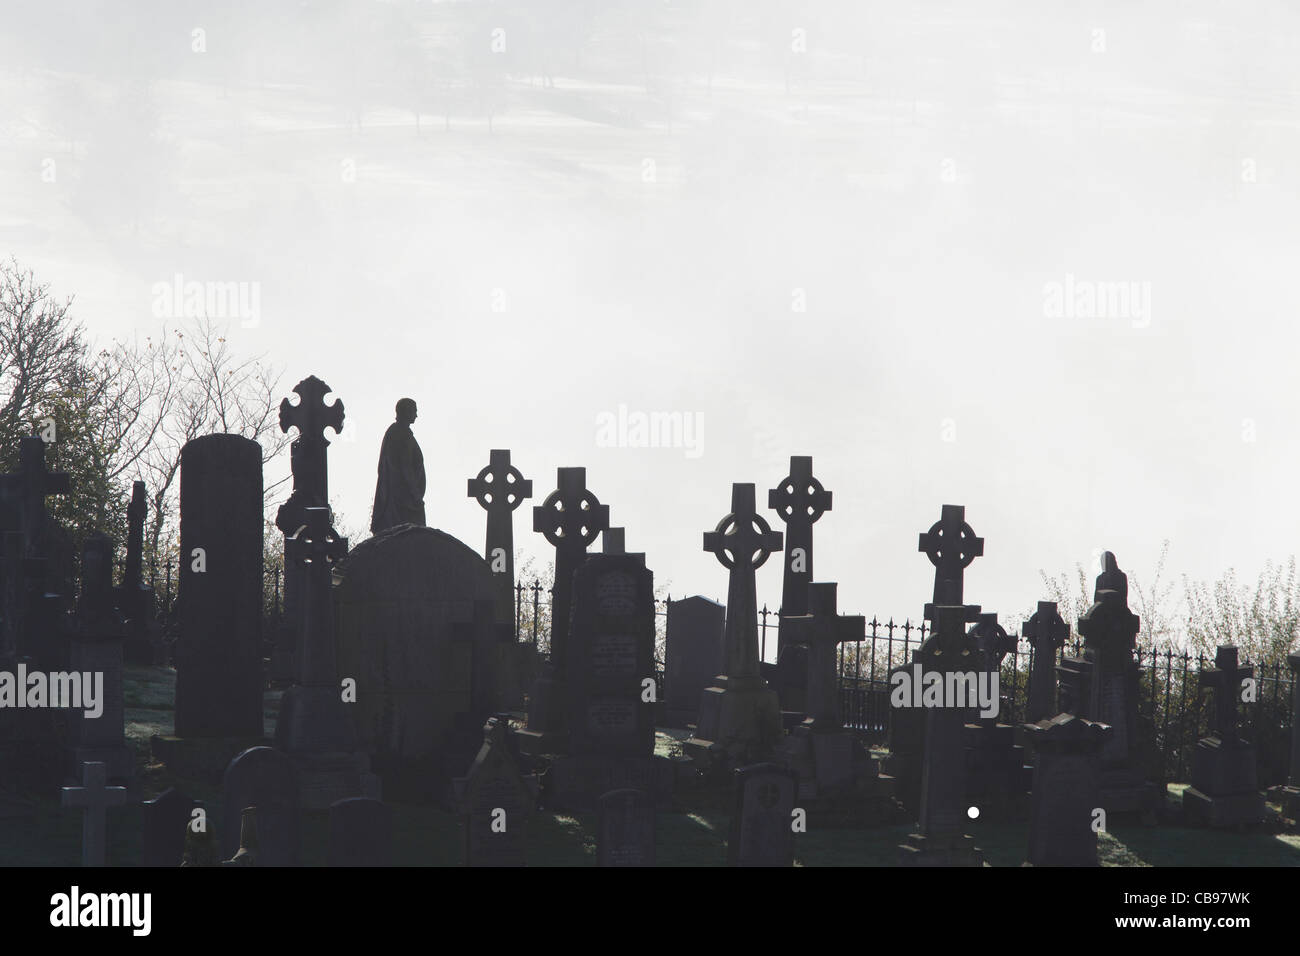 Stirling Old Town Cemetery with fog in the background, Scotland, UK Stock Photo